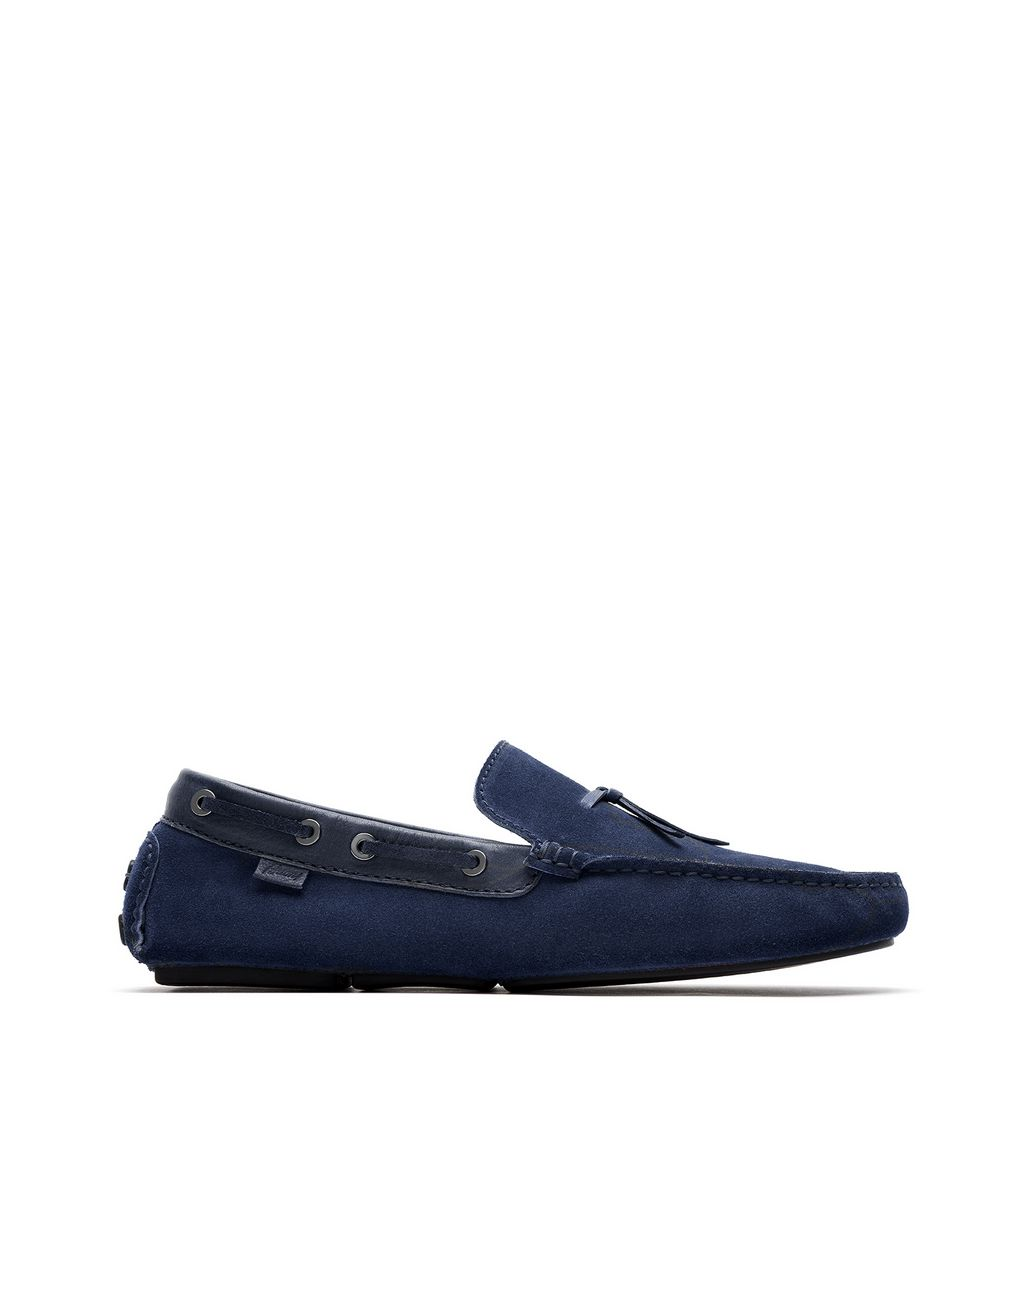 BRIONI Navy-Blue Unlined Calf Suede Loafer Loafers [*** pickupInStoreShippingNotGuaranteed_info ***] f